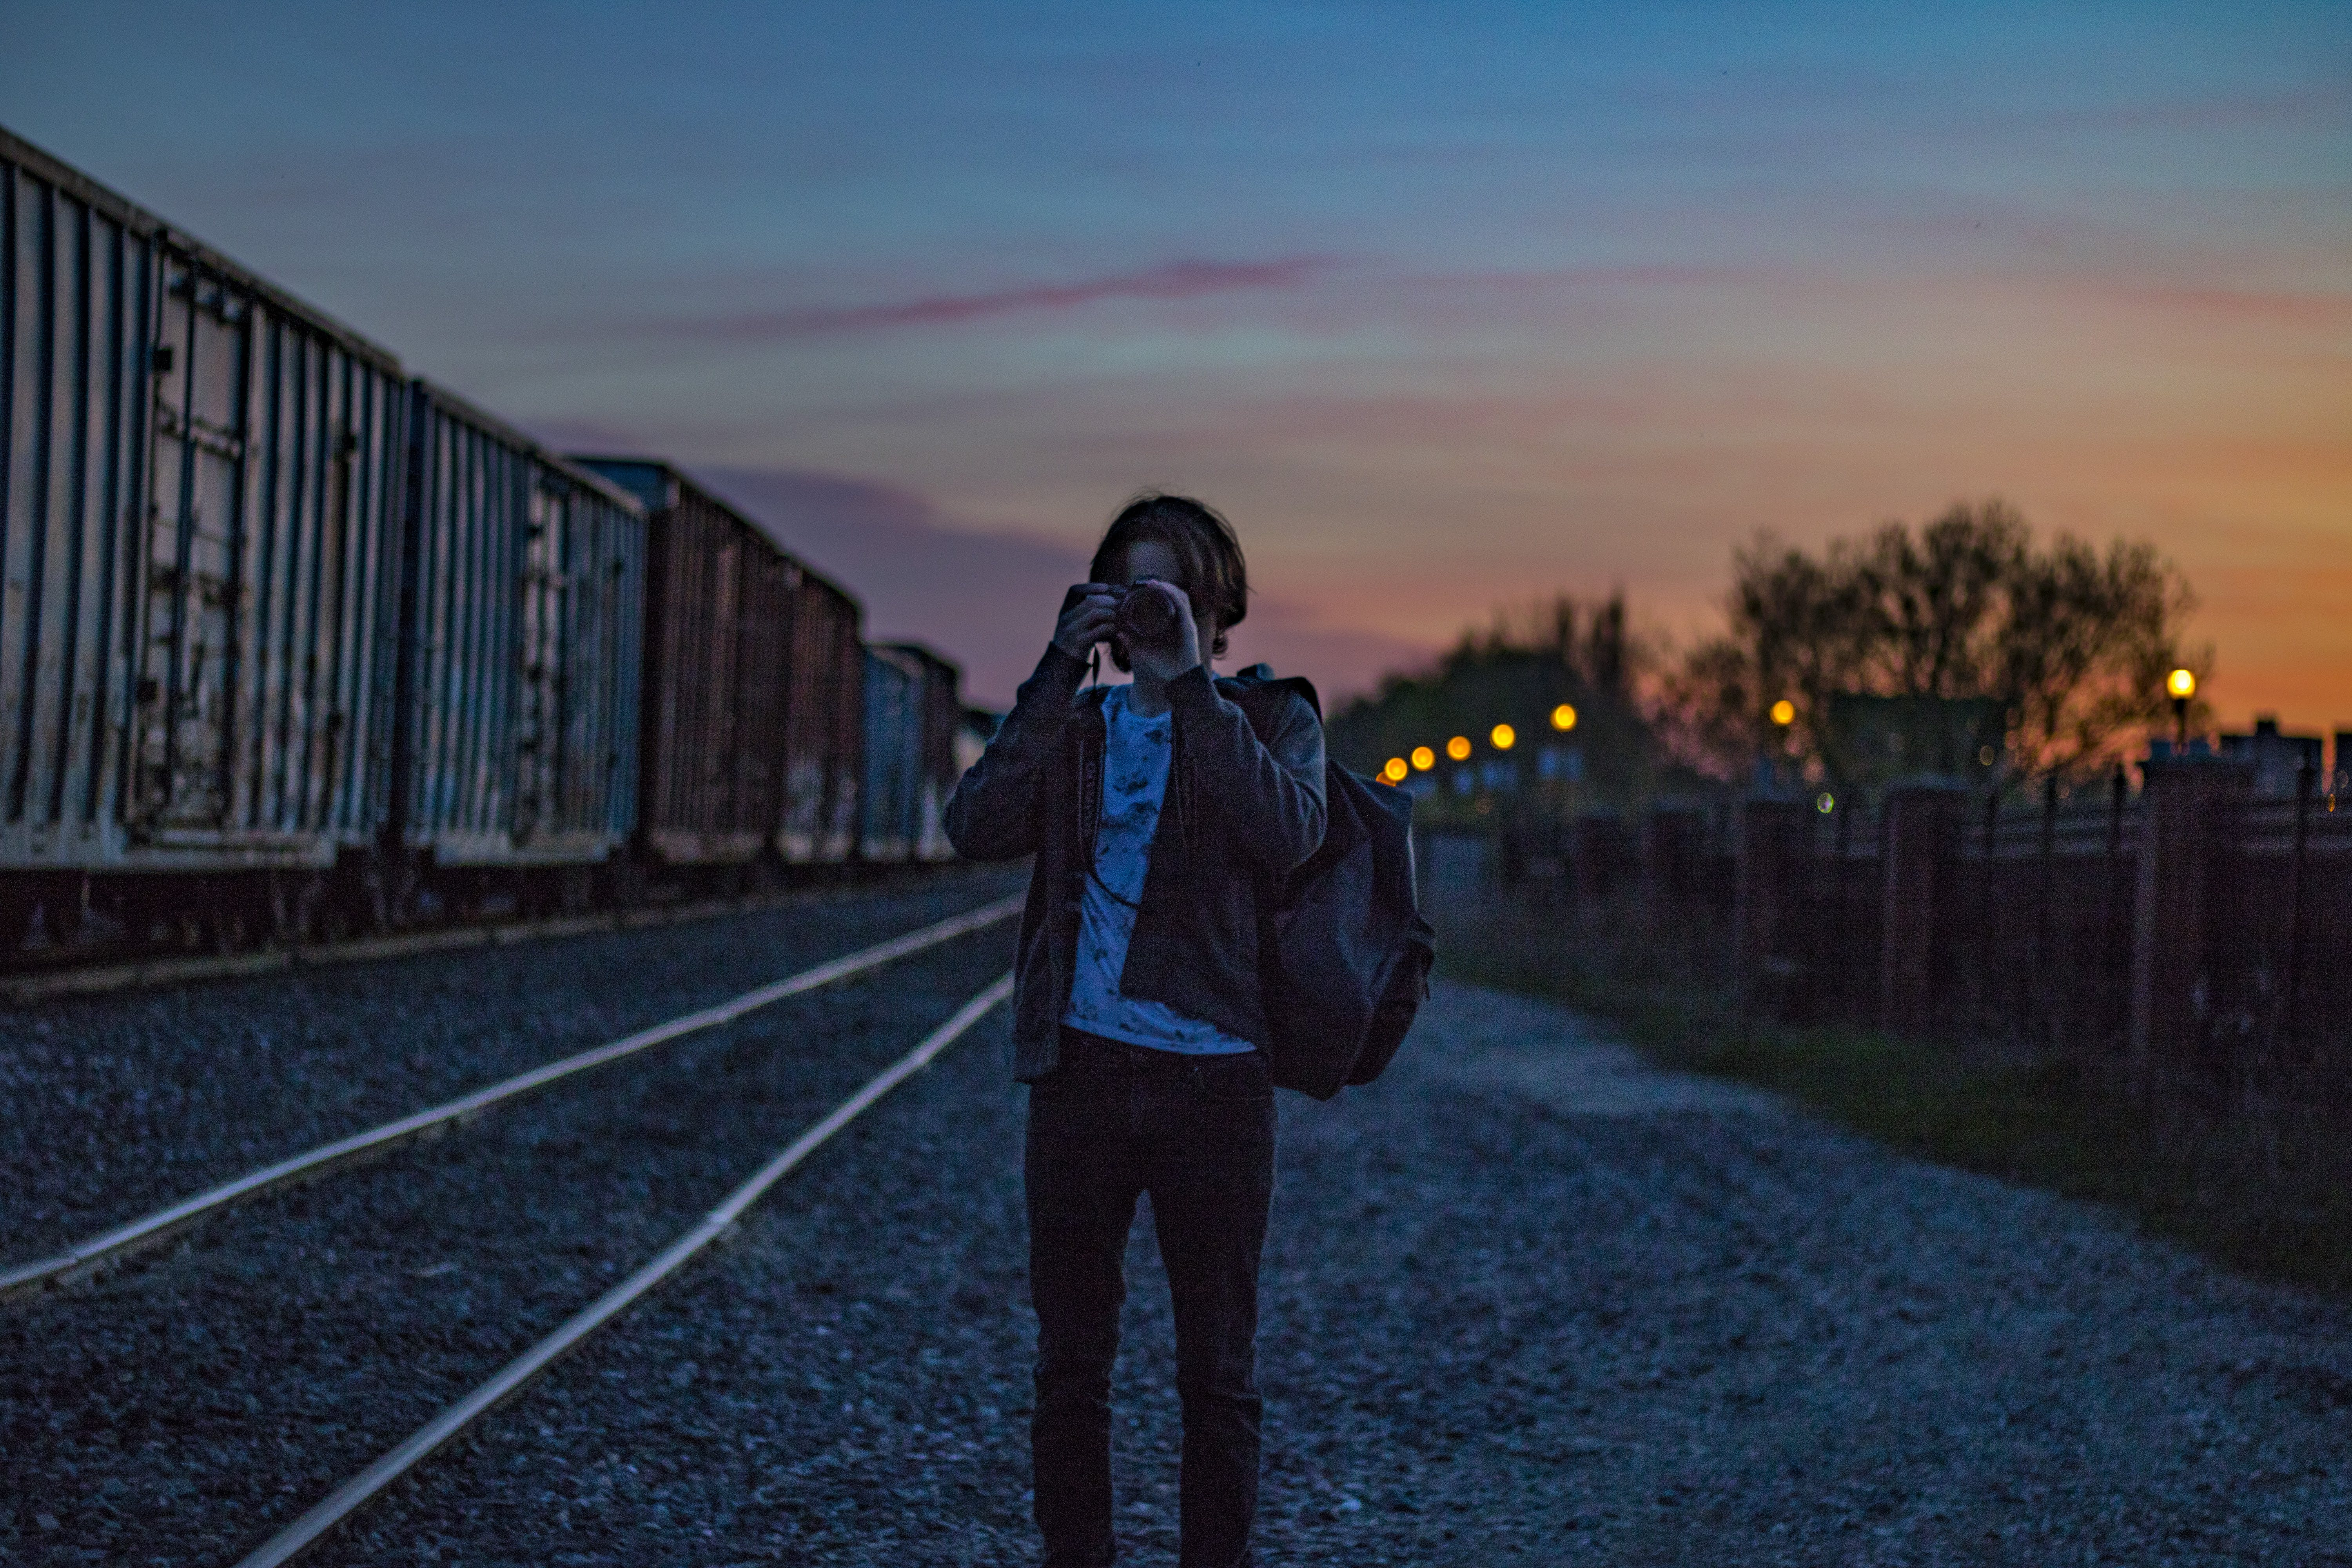 Man Wearing Brown Jacket With Backpack Taking Photo during Golden Hour